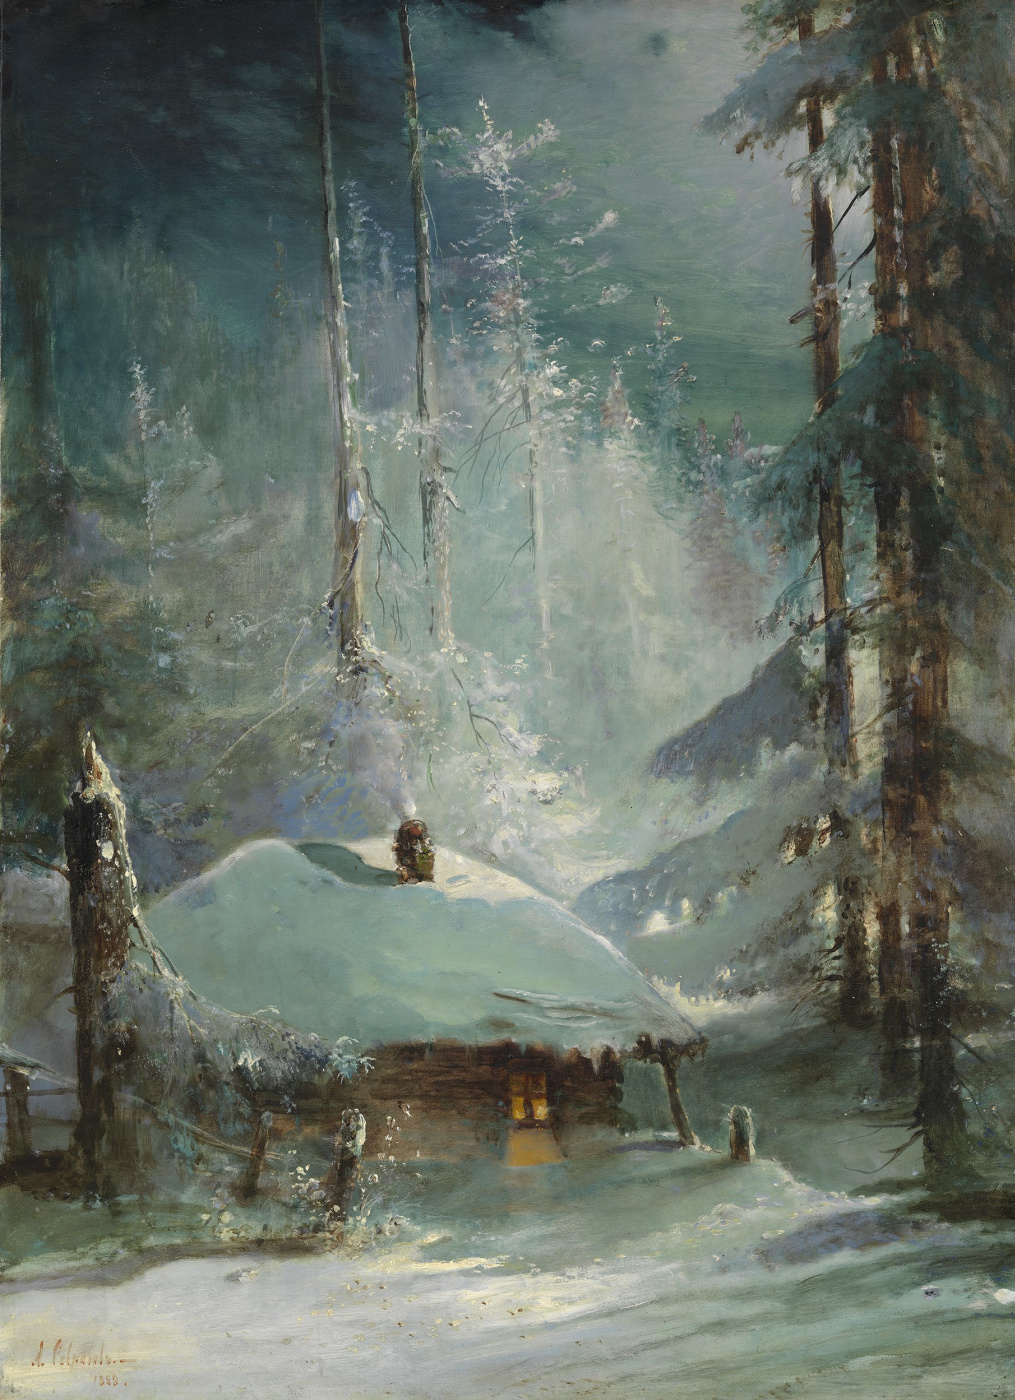 Alexey Savrasov. Hut in winter forest